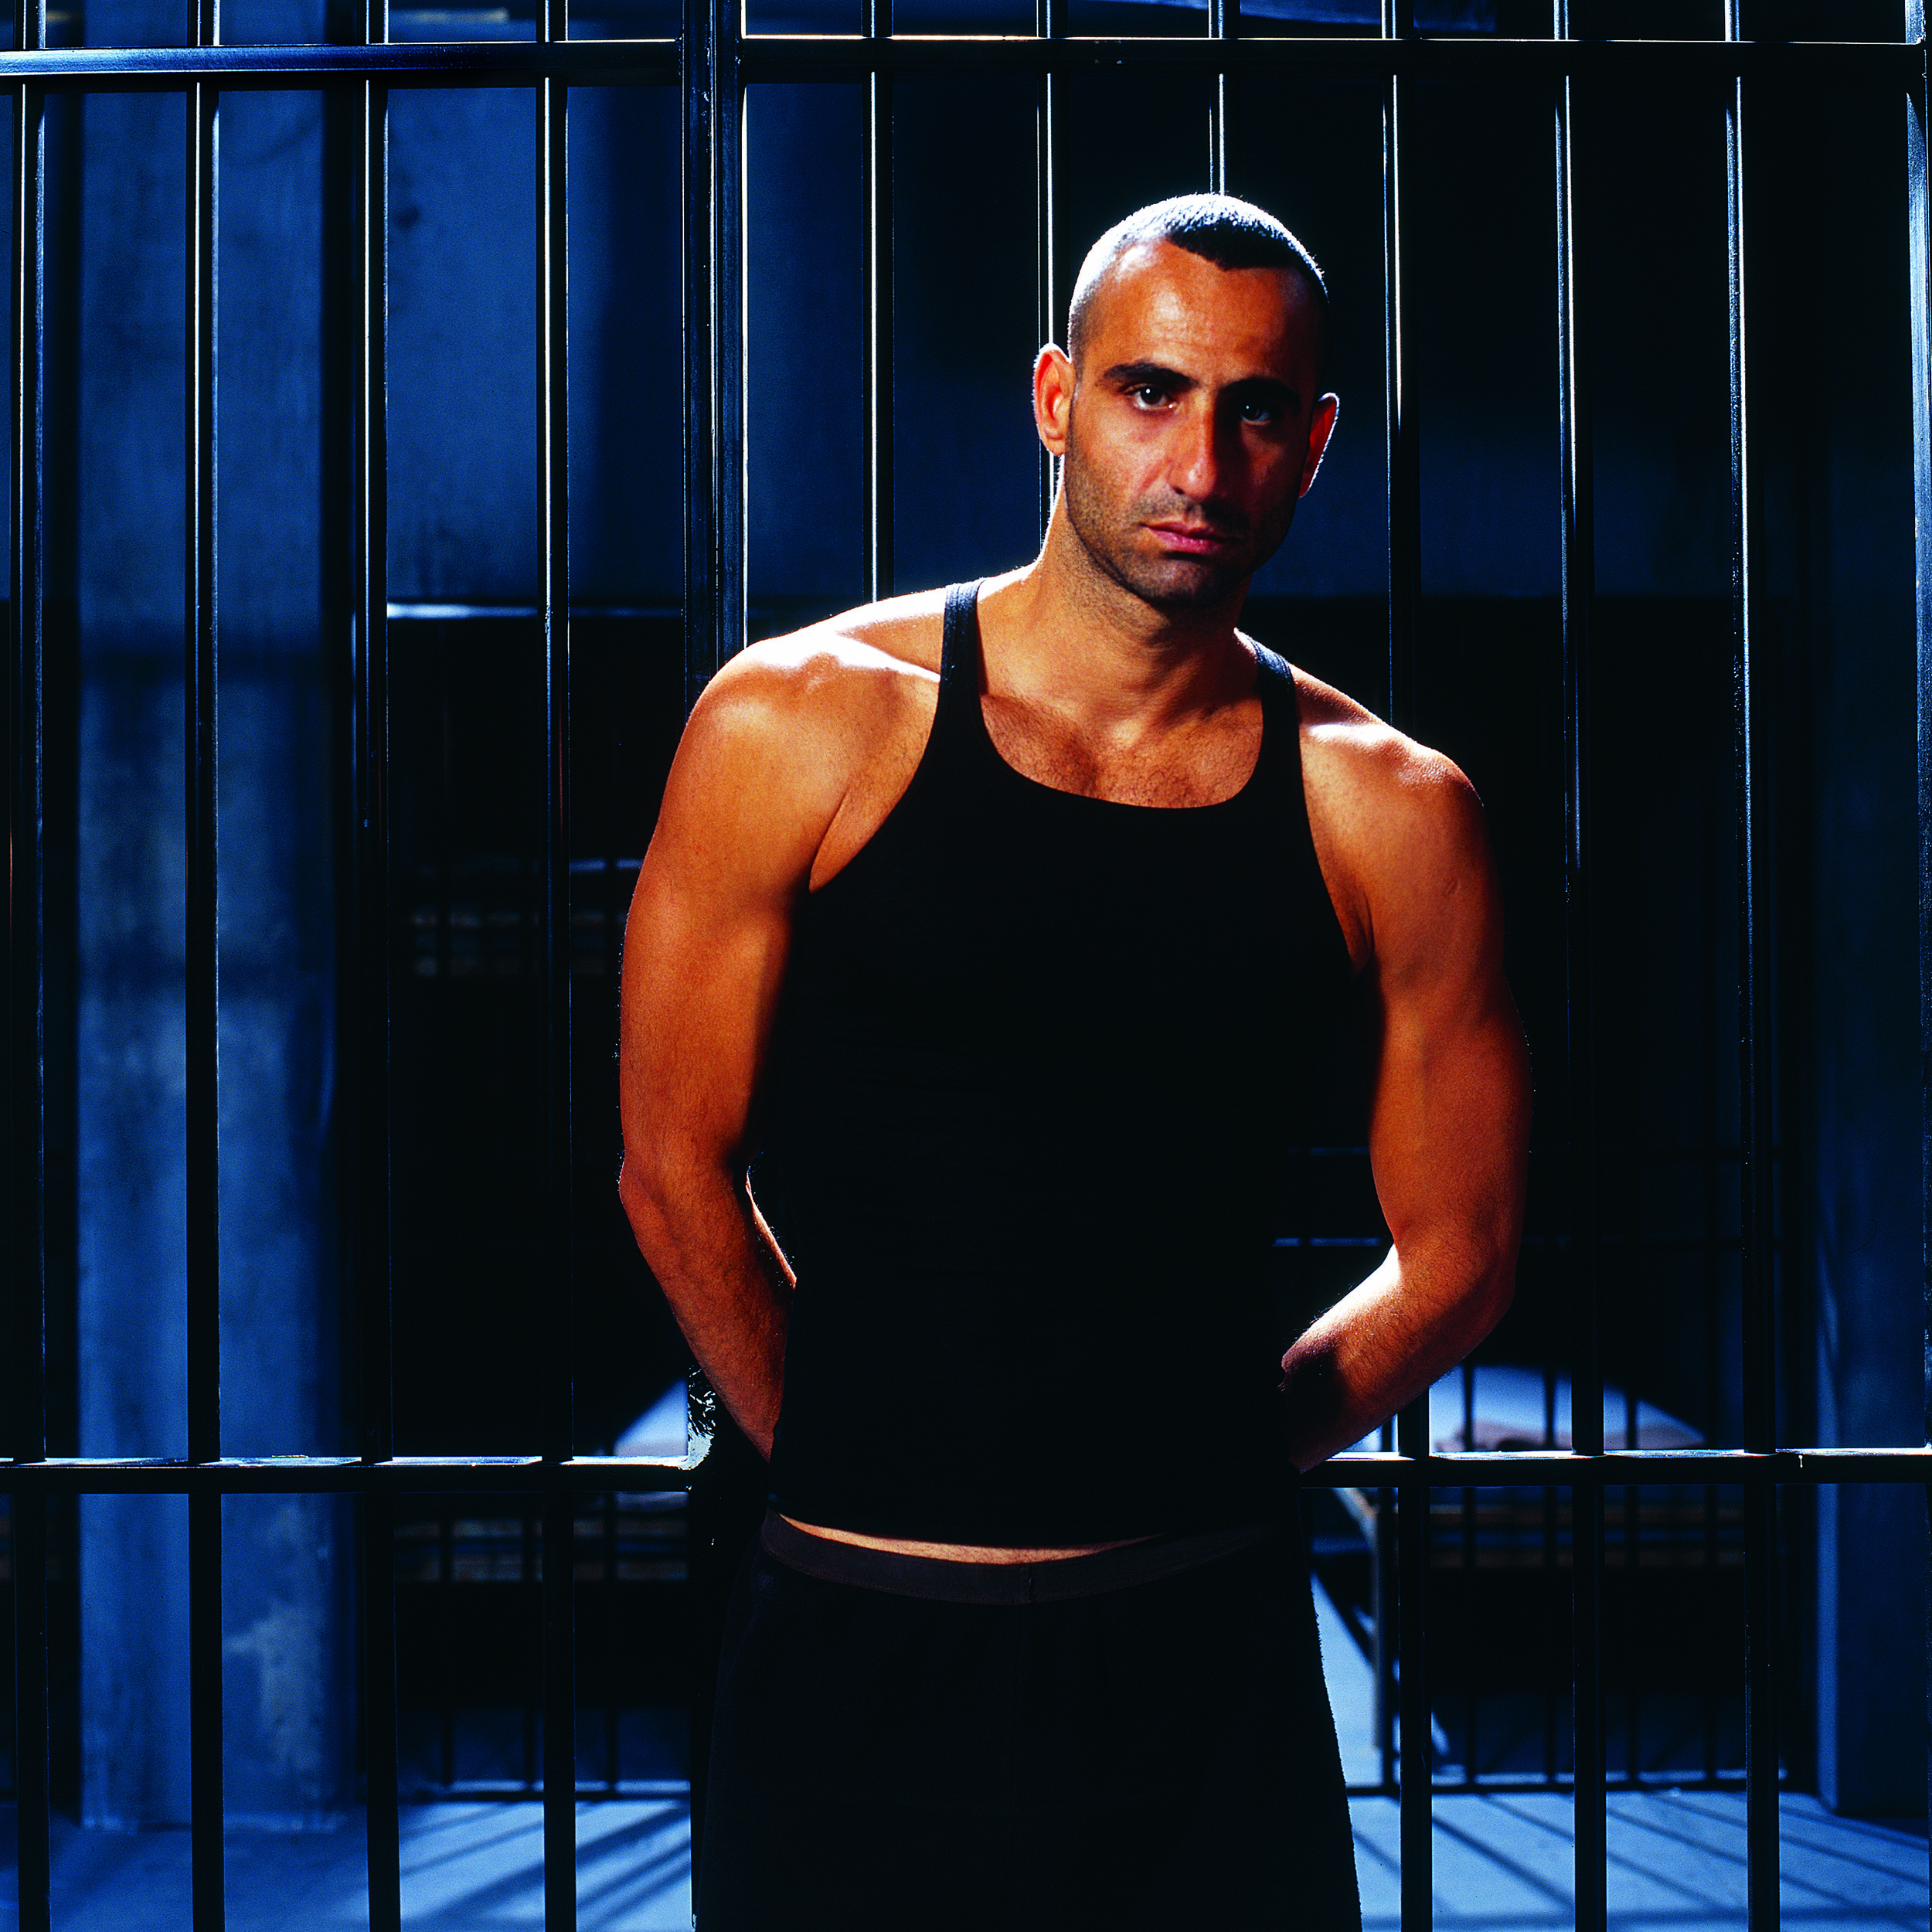 """""""Untitled"""" from the """"Prisoners"""" series, 2003 color photograph mounted on PVC edition of 10 60 x 60 cm - 23 5/8 x 23 5/8 inches"""